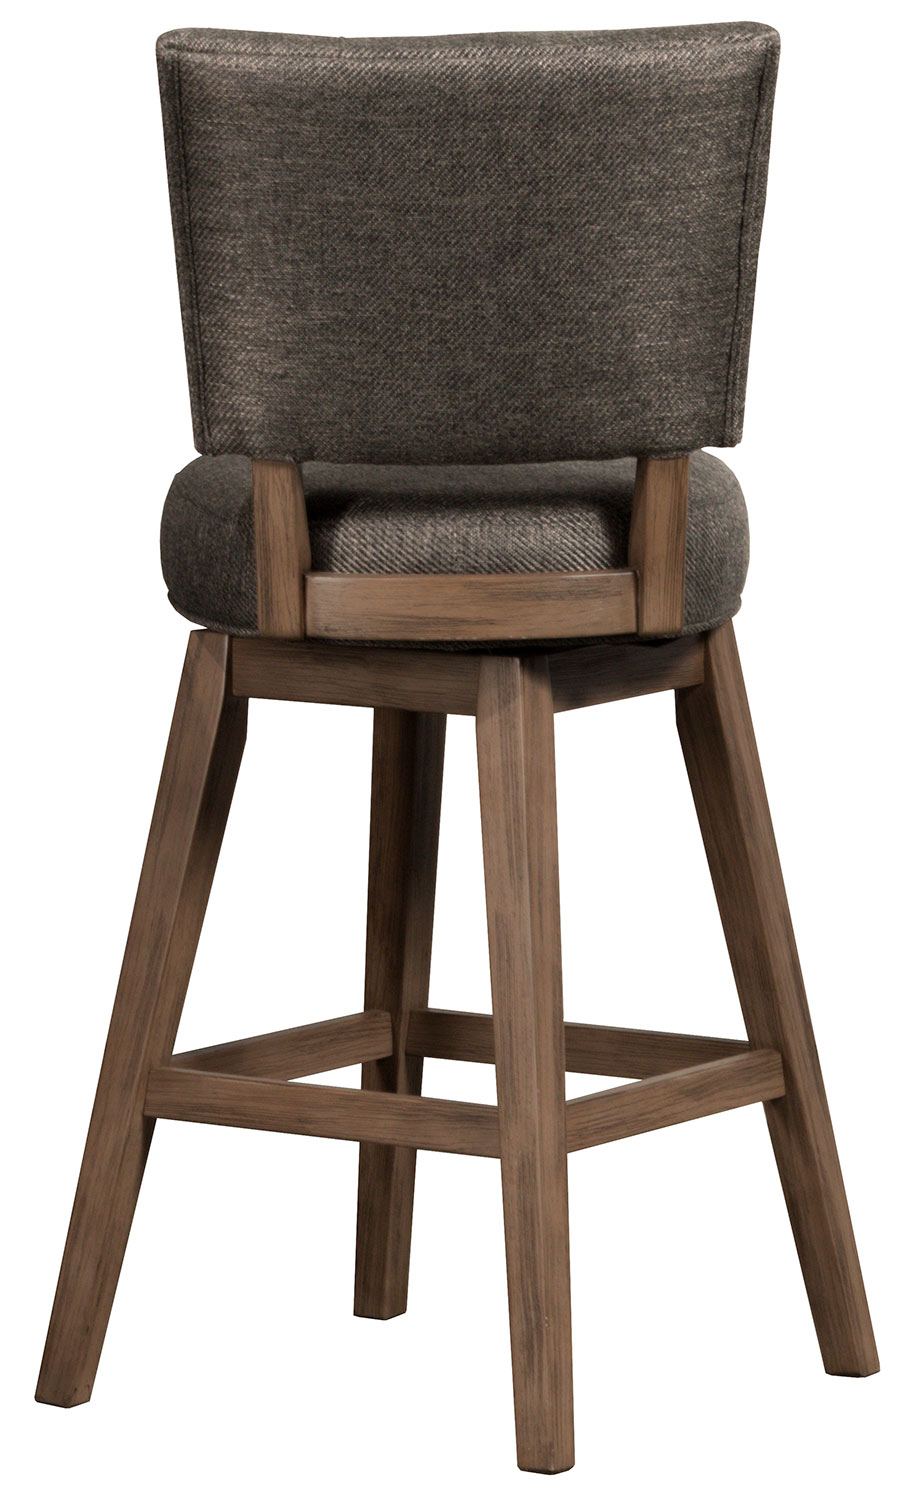 Hillsdale Lanning Swivel Counter Stool - Weathered Brown